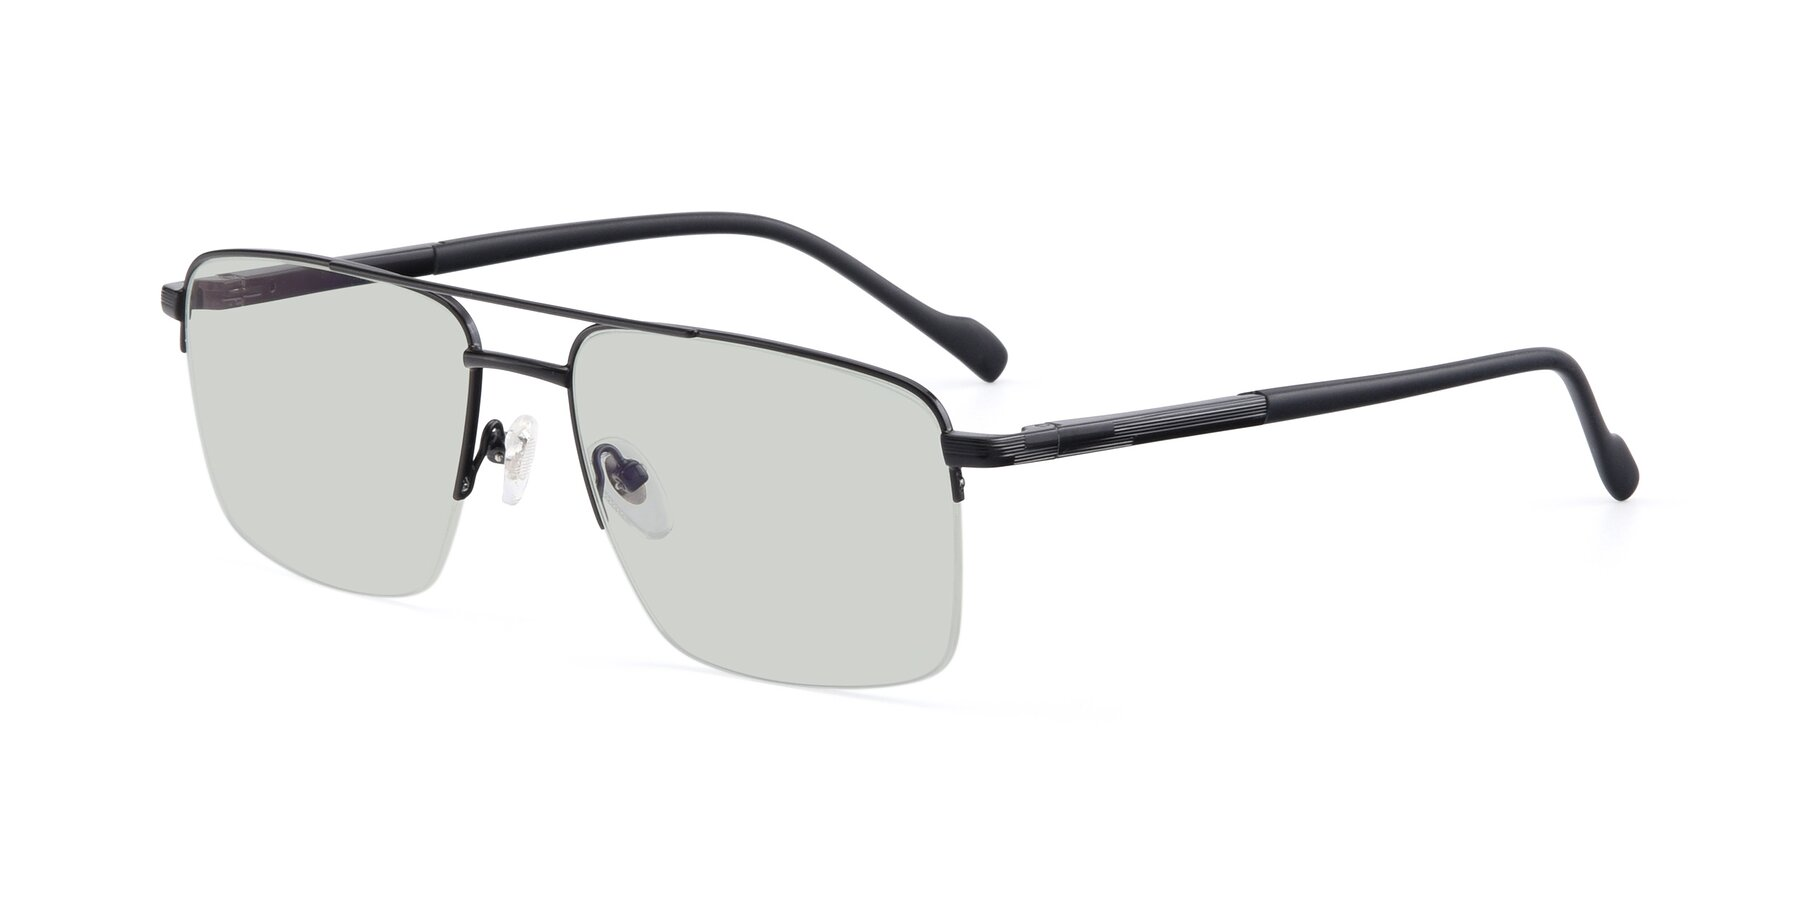 Angle of 19013 in Black with Light Green Tinted Lenses